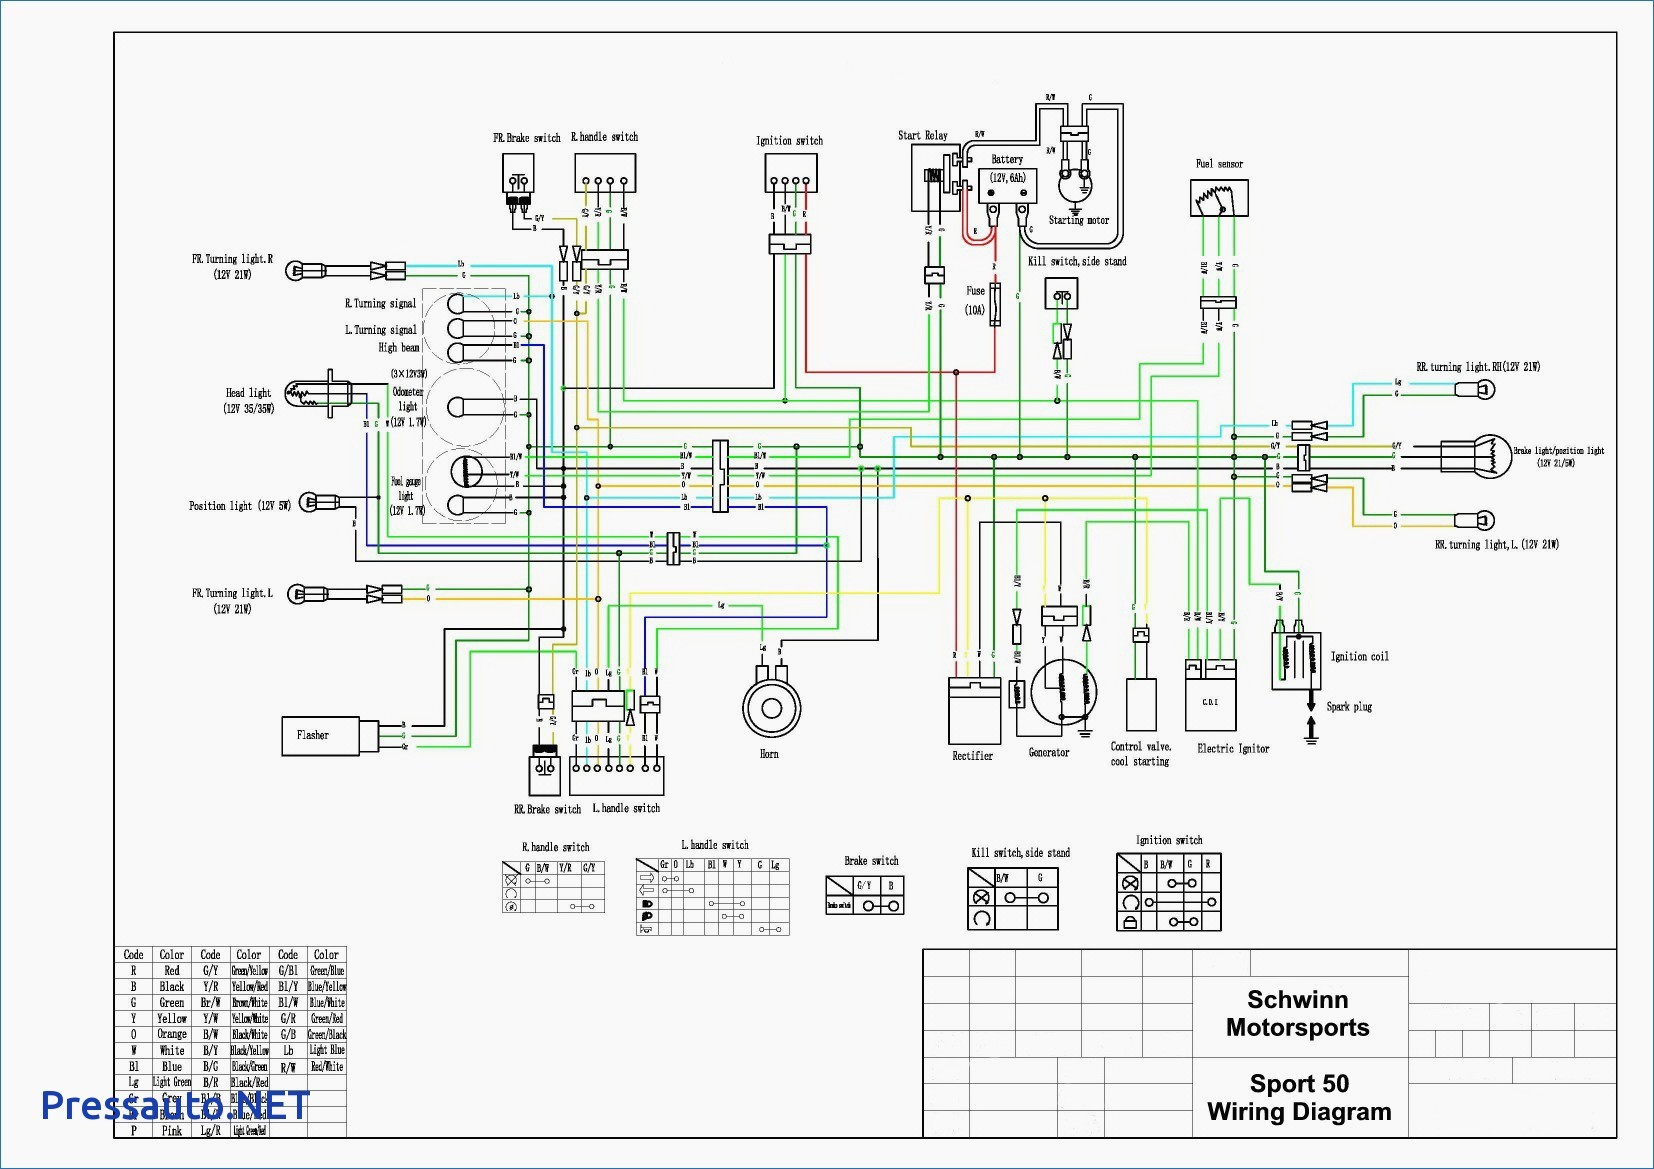 Kawasaki Zx9r Wiring Harness Diagram